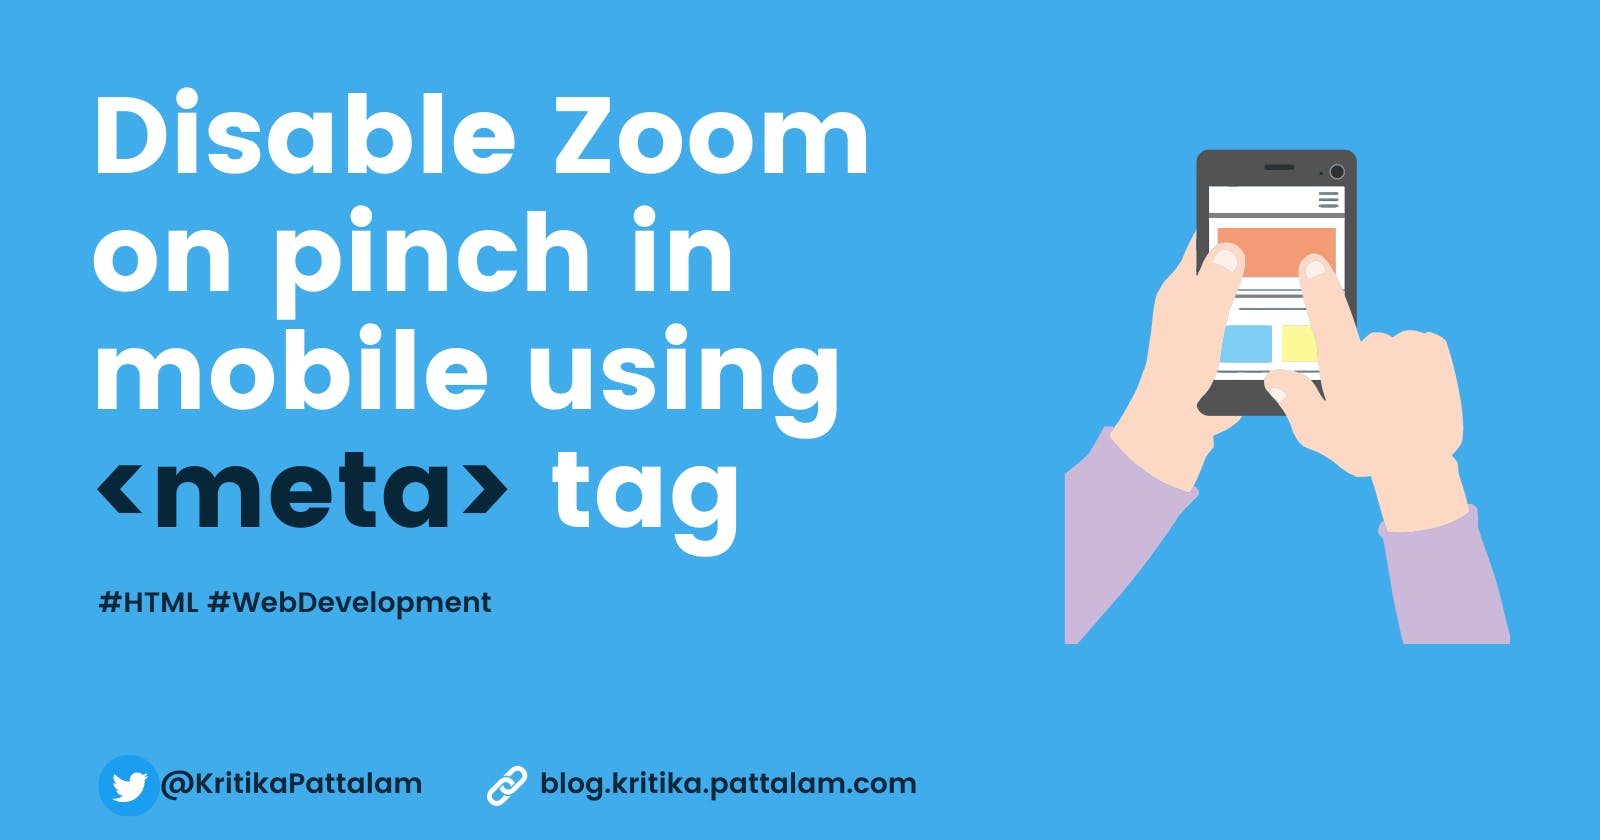 Disable Zoom on pinch in mobile using HTML tag.